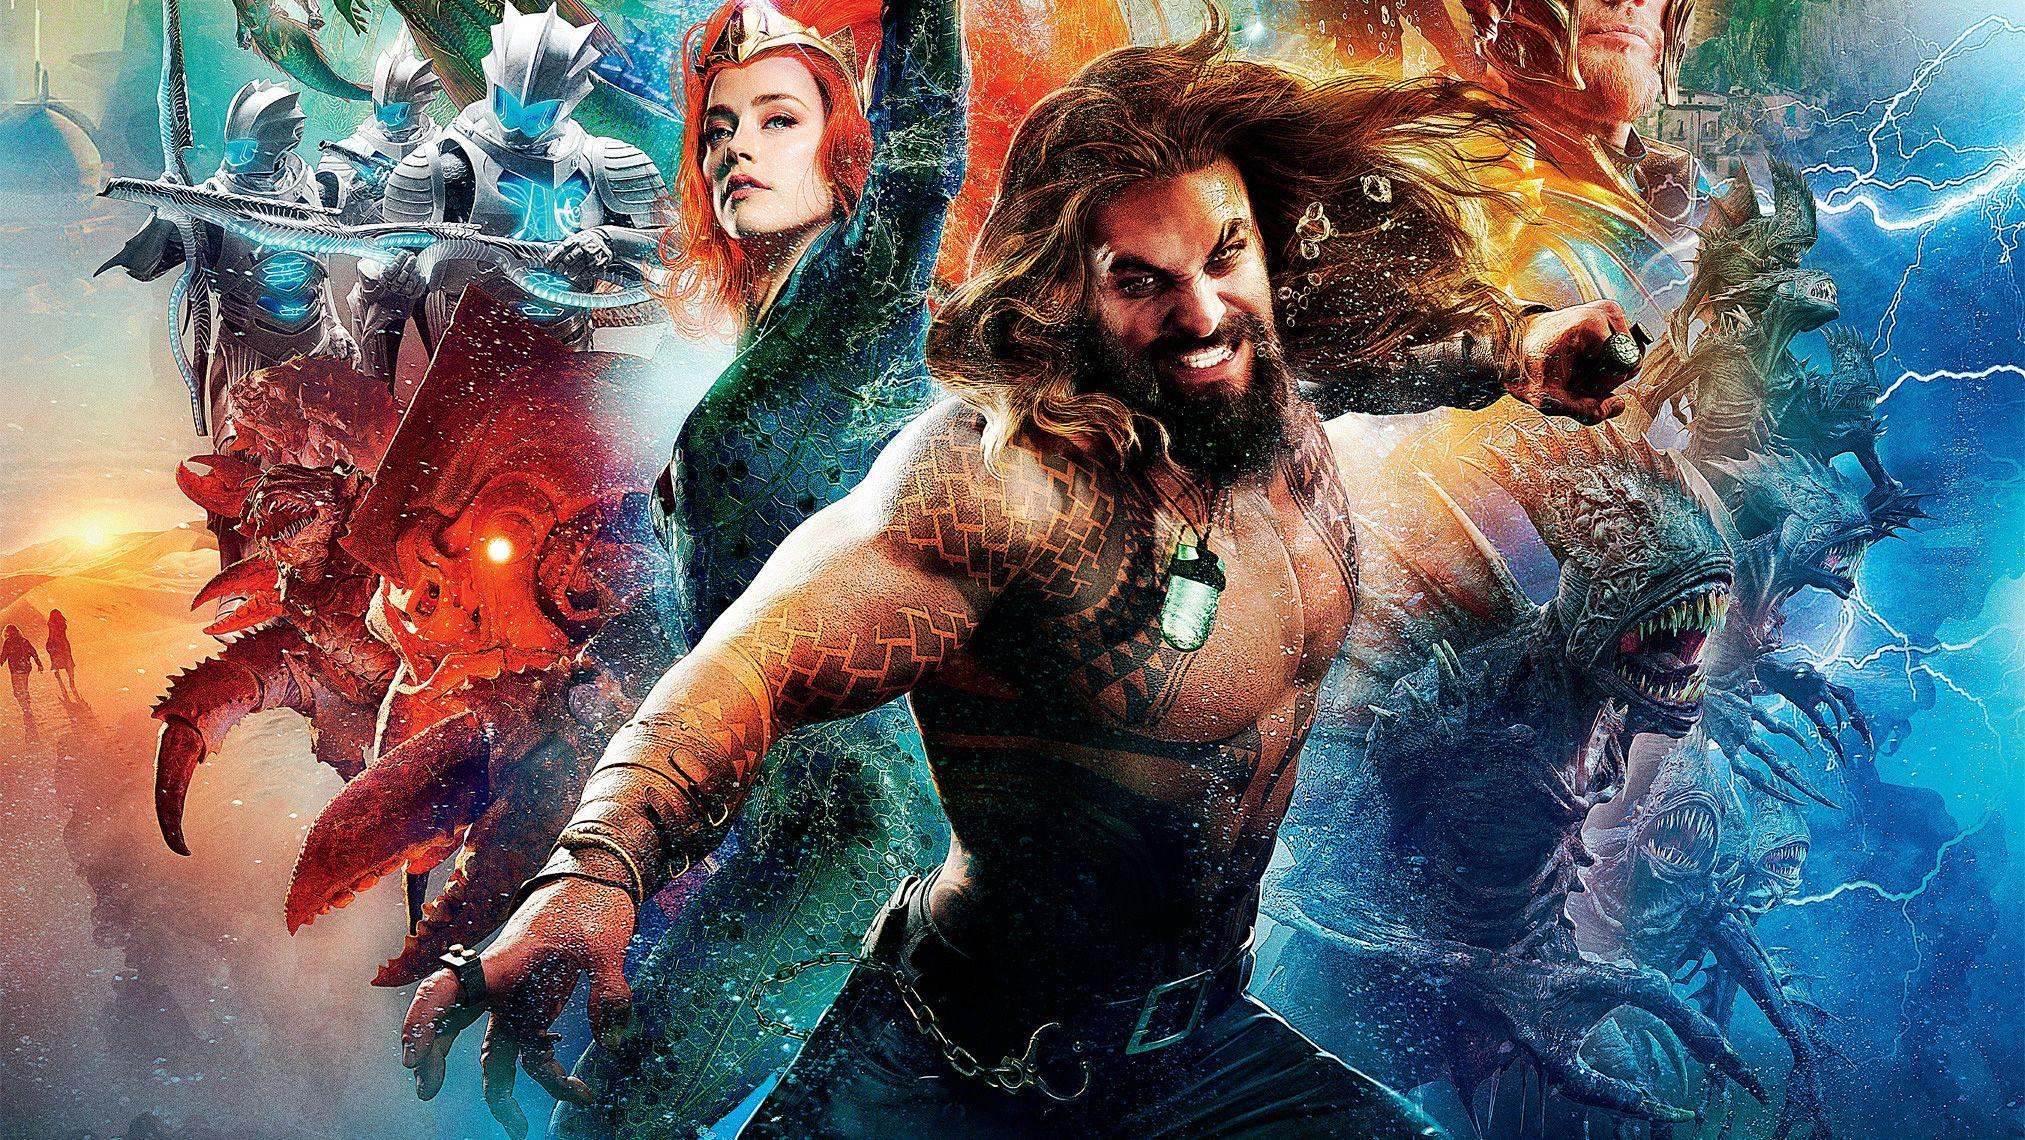 Aquaman 2018 Movie, HD Movies, 4k Wallpapers, Images, Backgrounds ...